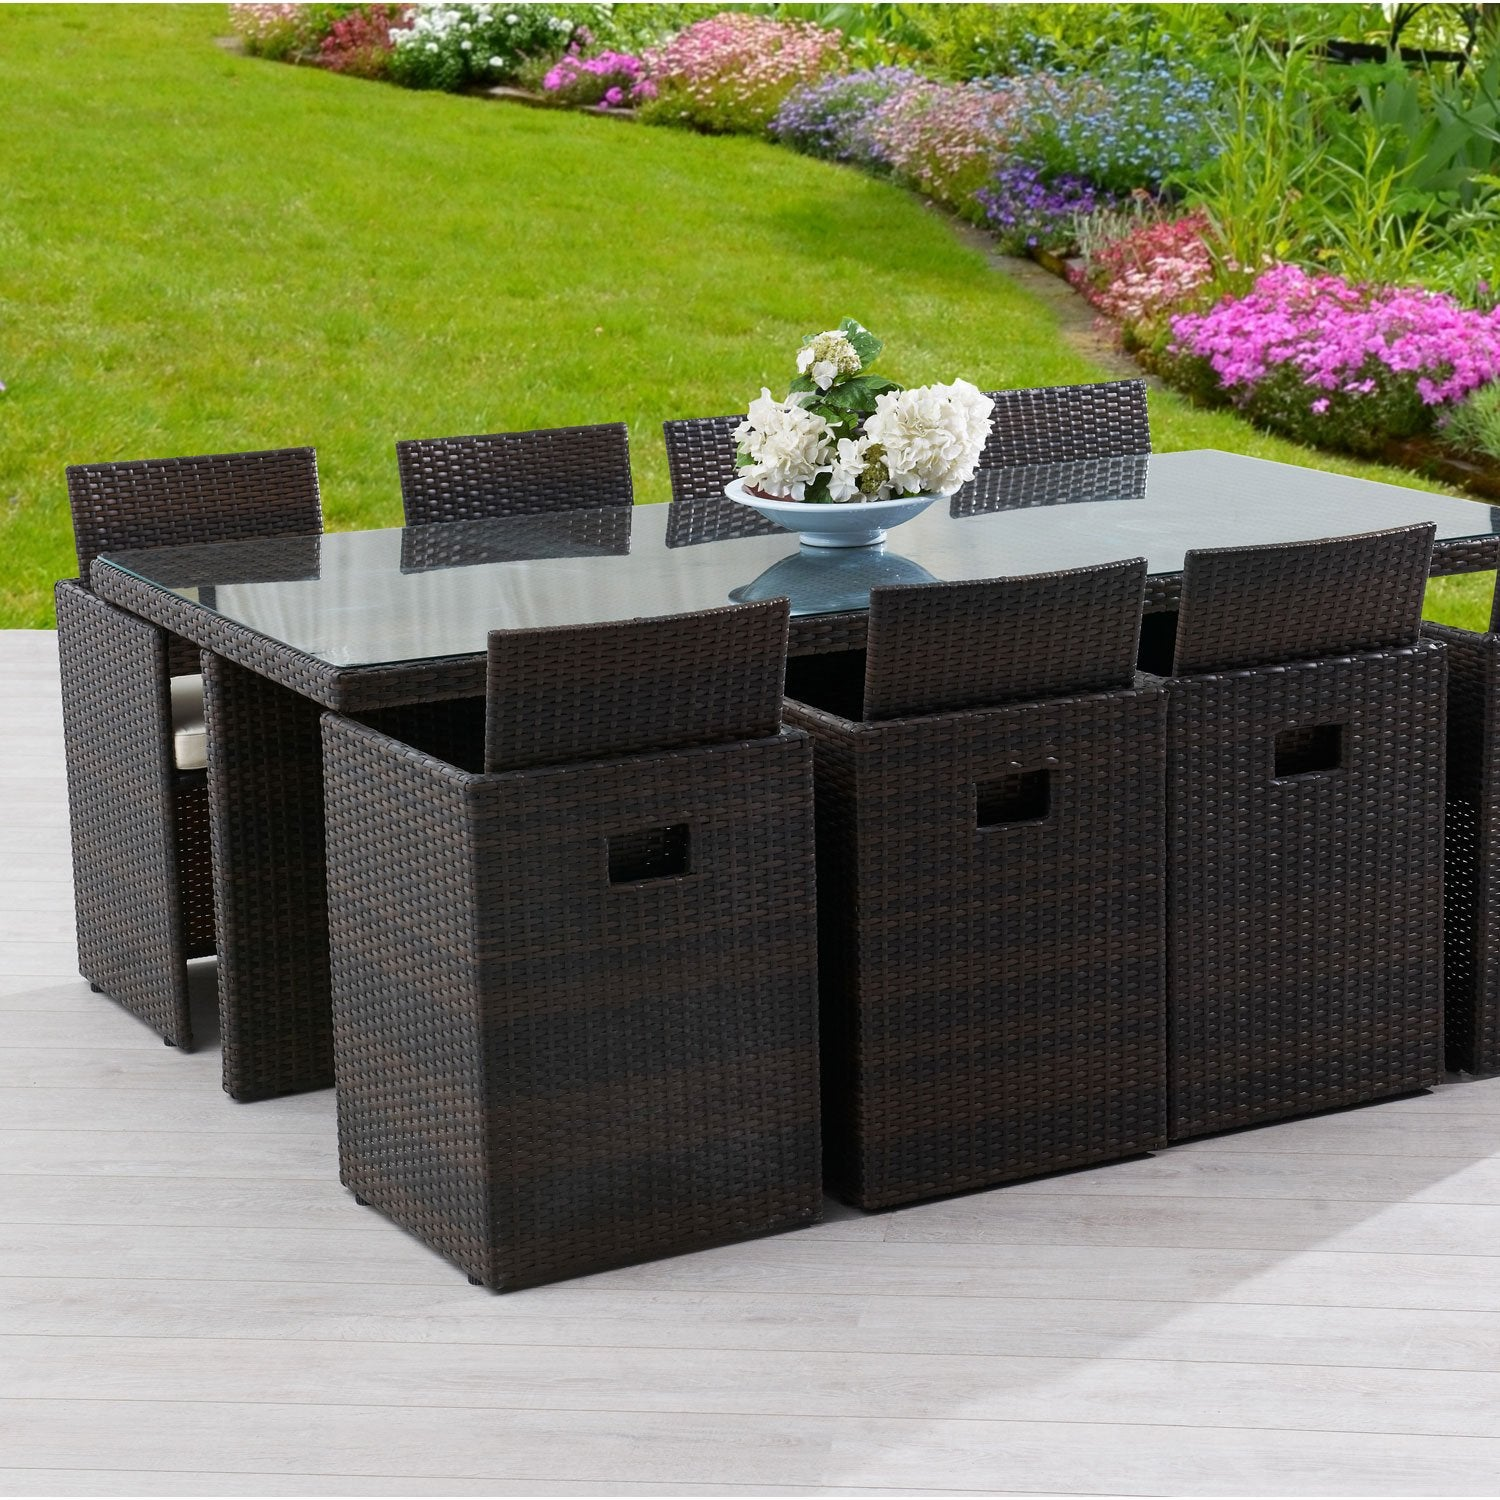 Salon de jardin encastrable r sine tress e marron 1 table for Salon de jardin leroy merlin